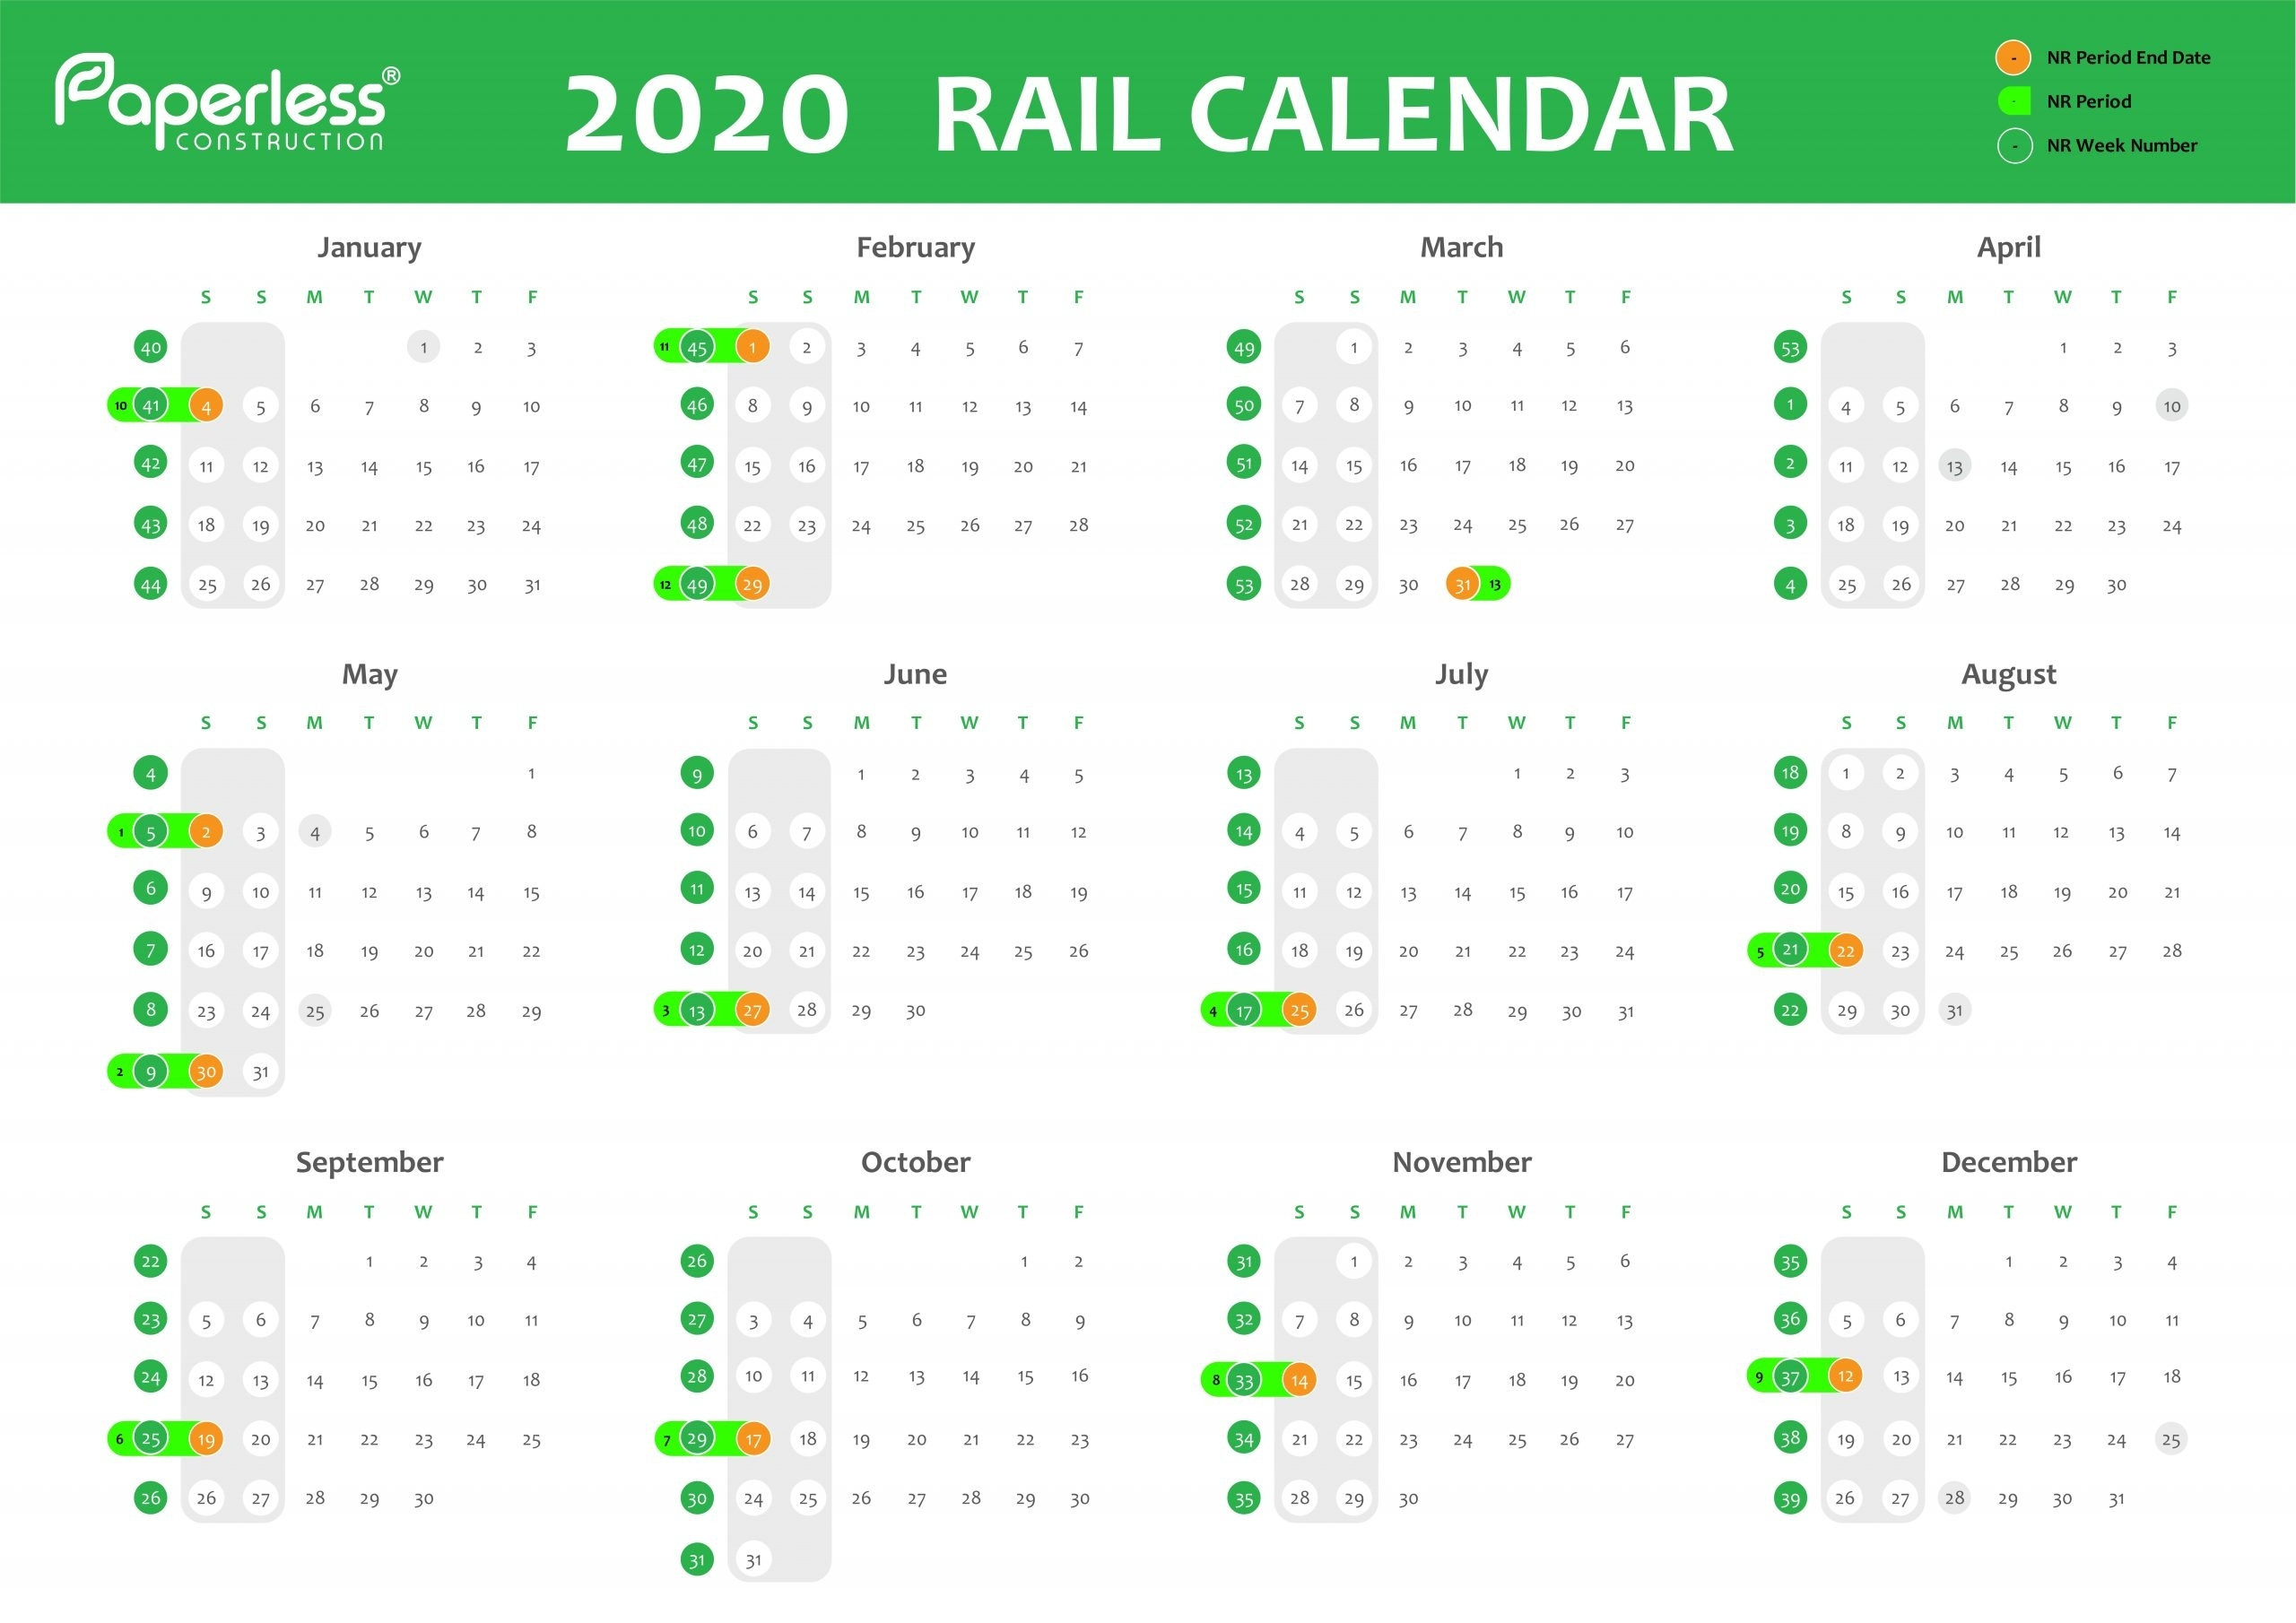 Collect Network Rail Week Numbers 2021